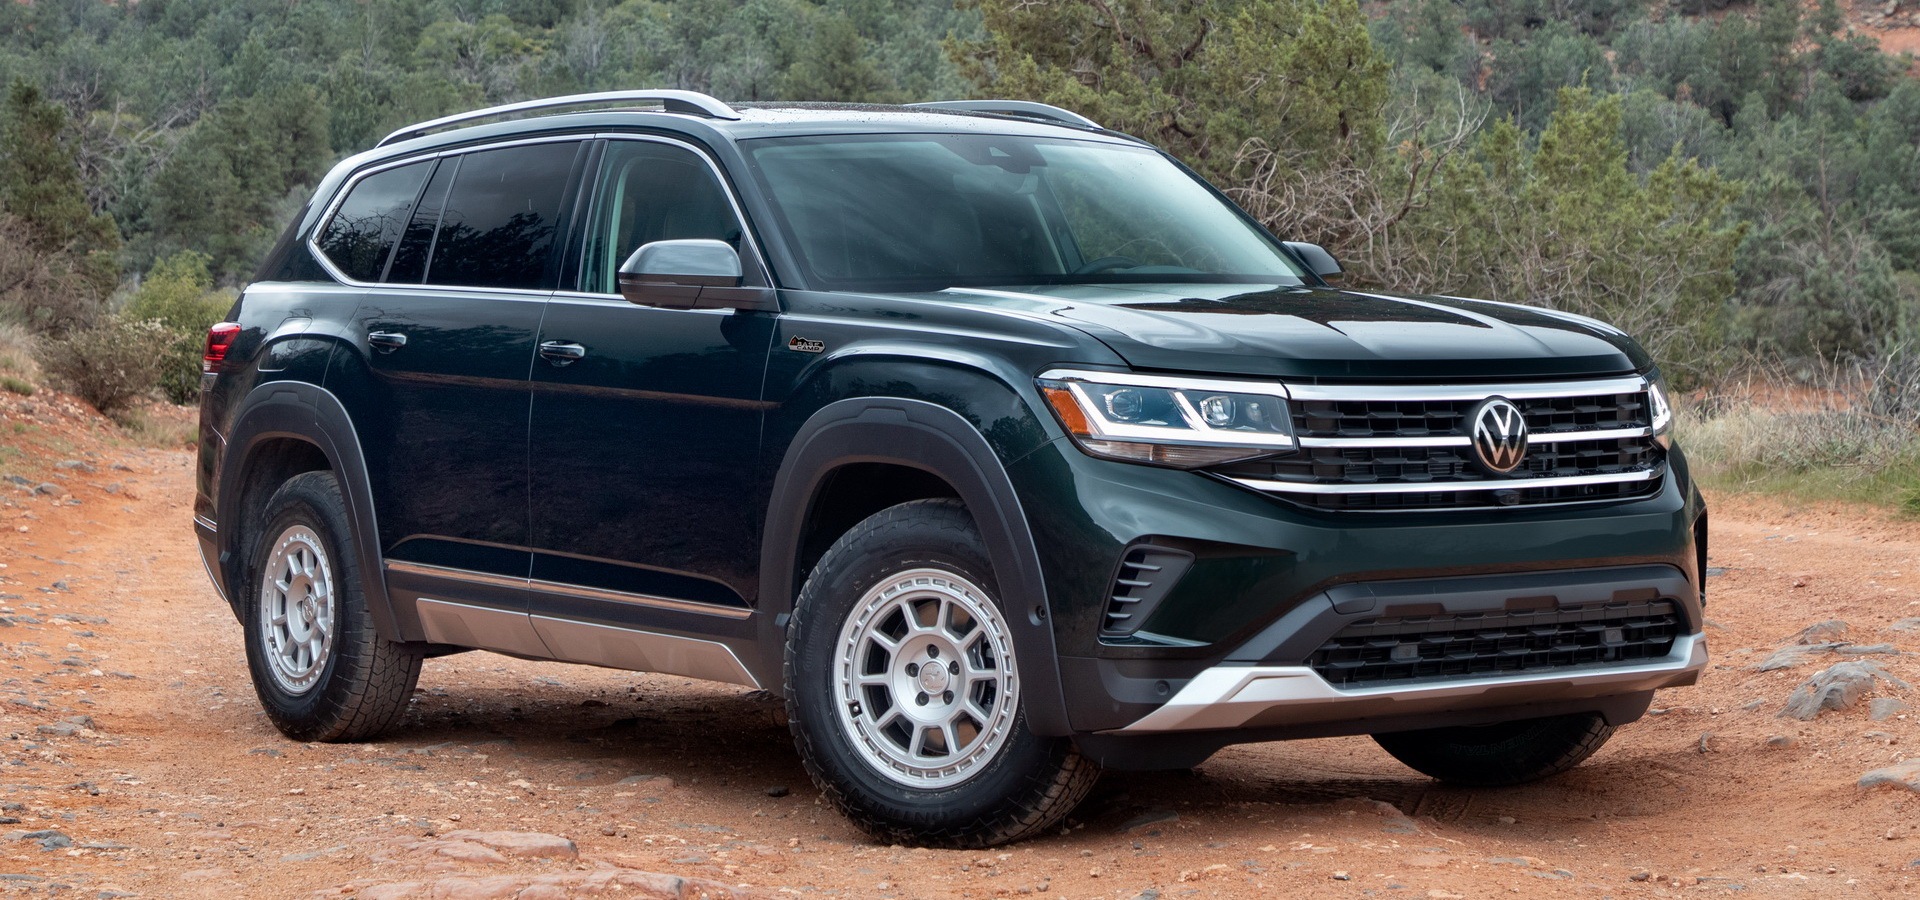 Vw Atlas Gains Rugged Body Kit And Unique Wheels Thanks To - 2022 Vw Atlas Off Road Release Date, Color Options